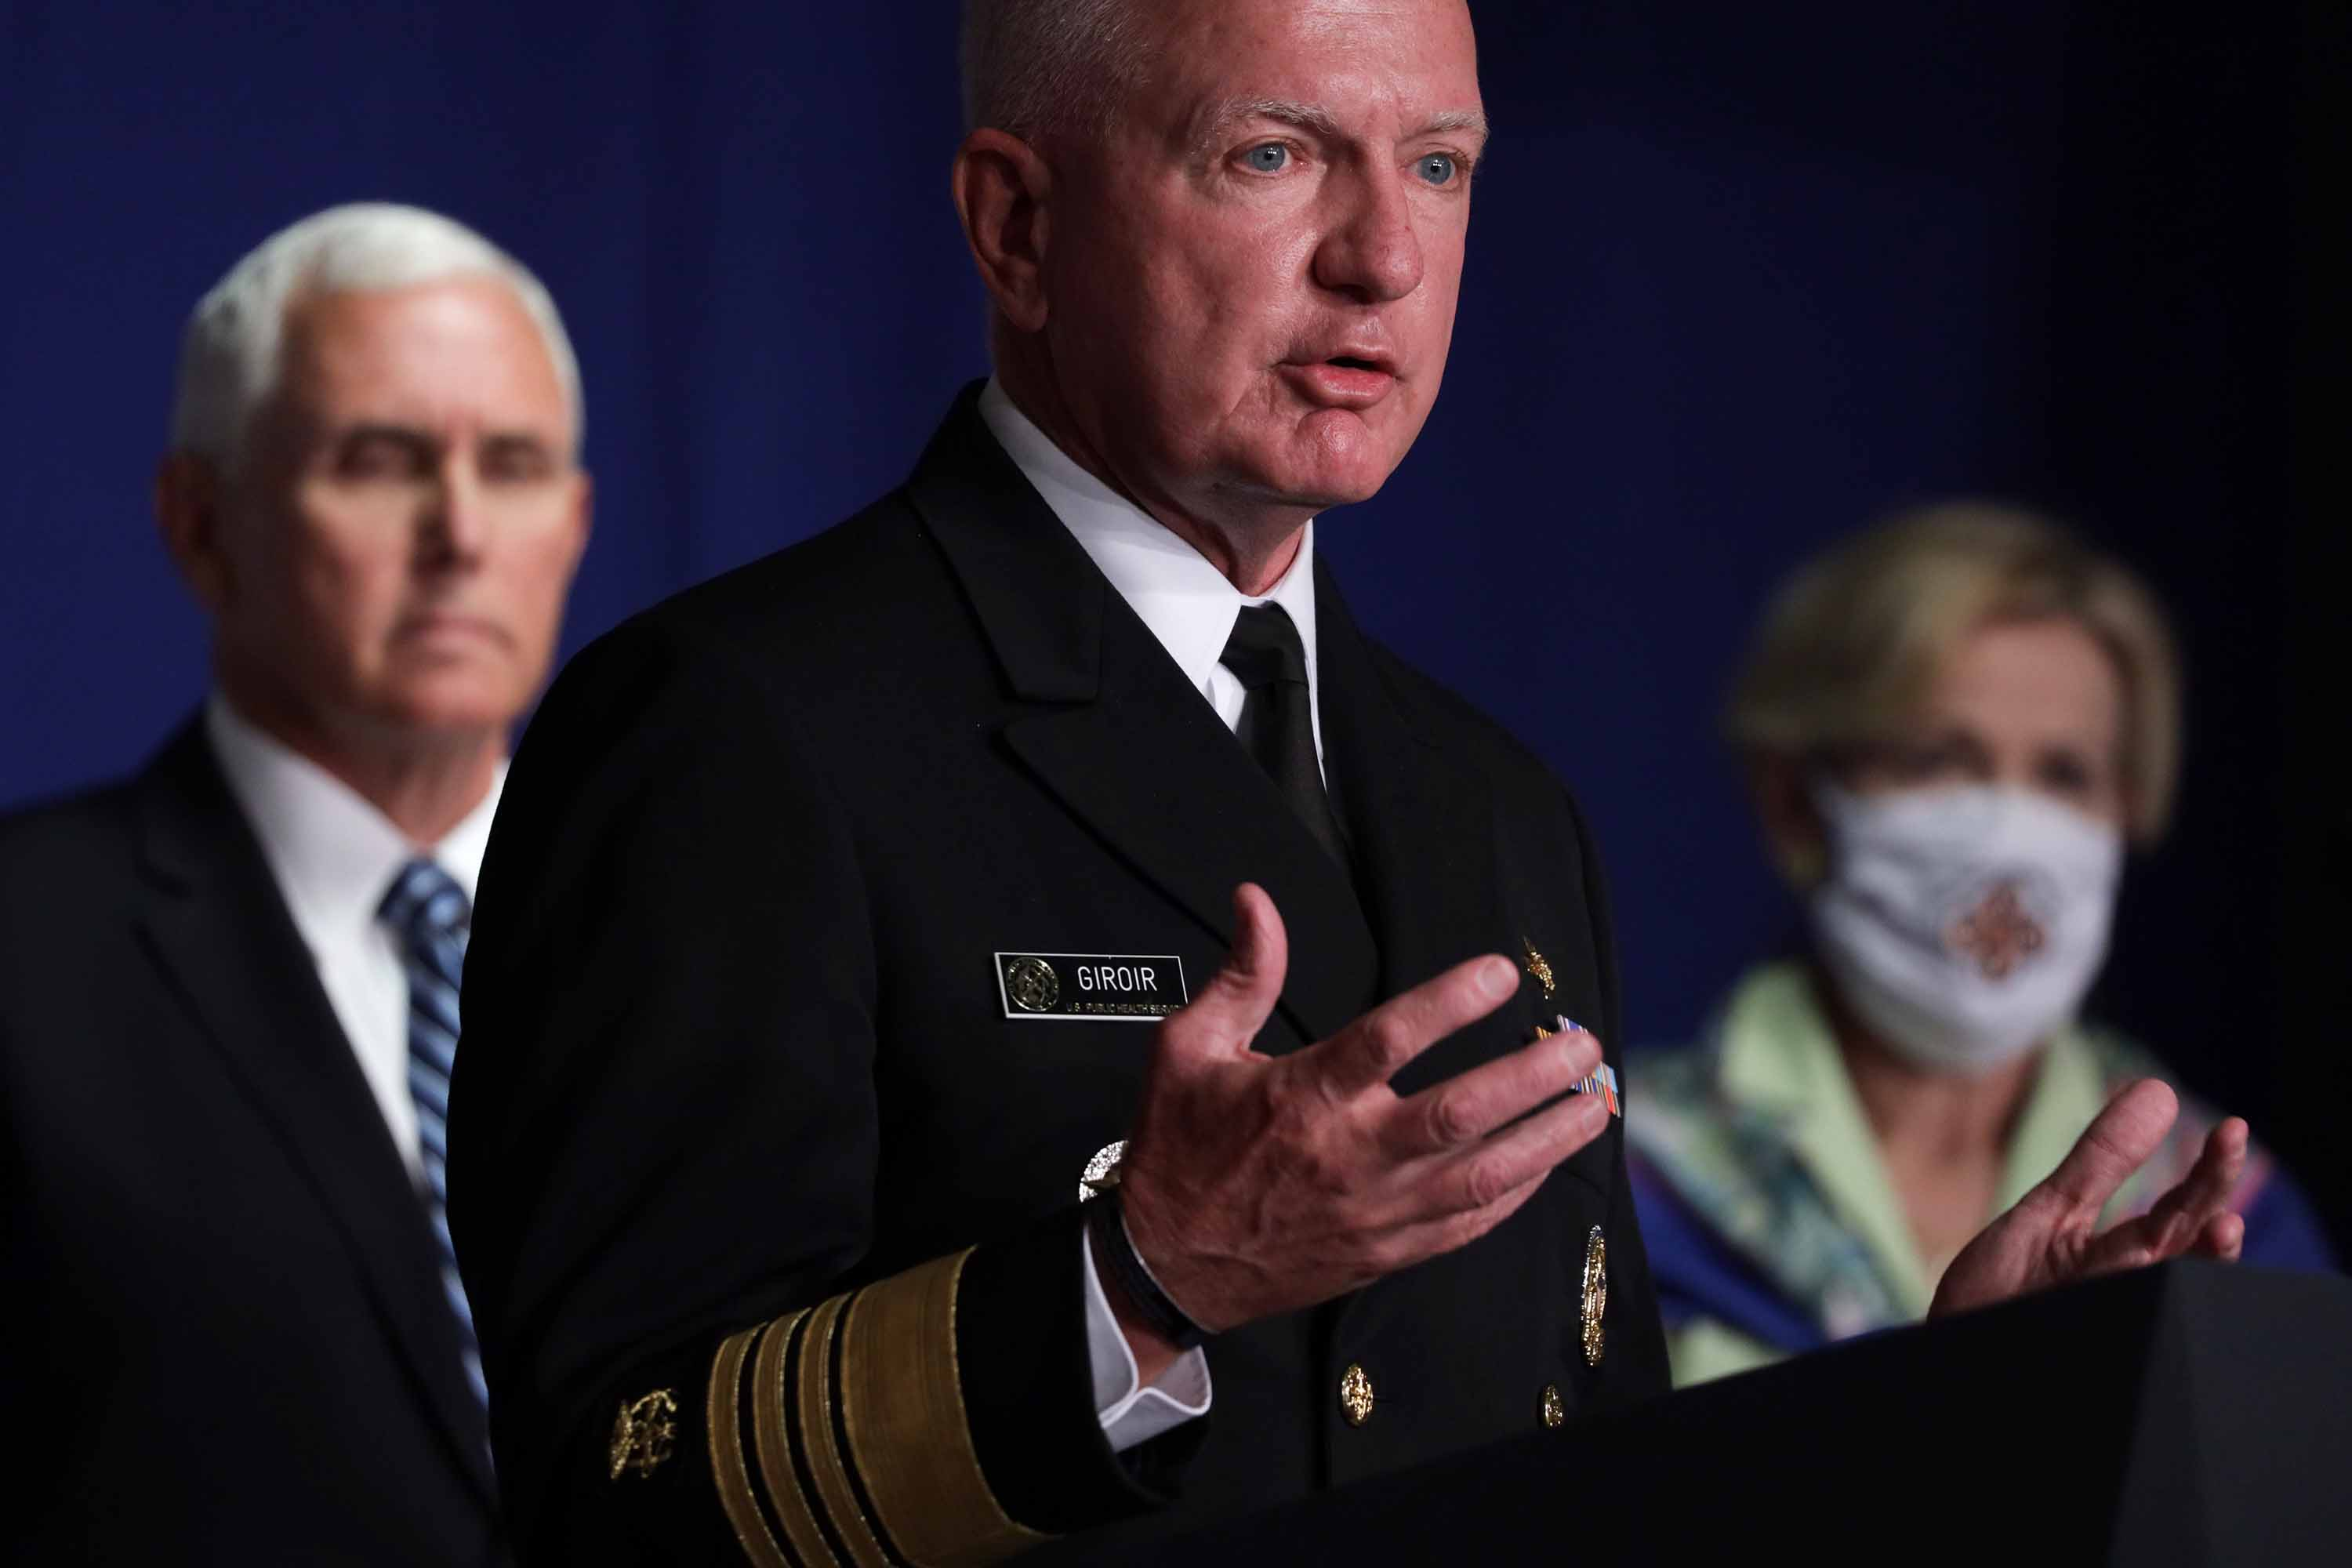 Admiral Brett Giroir, assistant secretary for health at the US Department of Health and Human Services, speaks during a White House Coronavirus Task Force press briefing in Washington, DC on July 8.